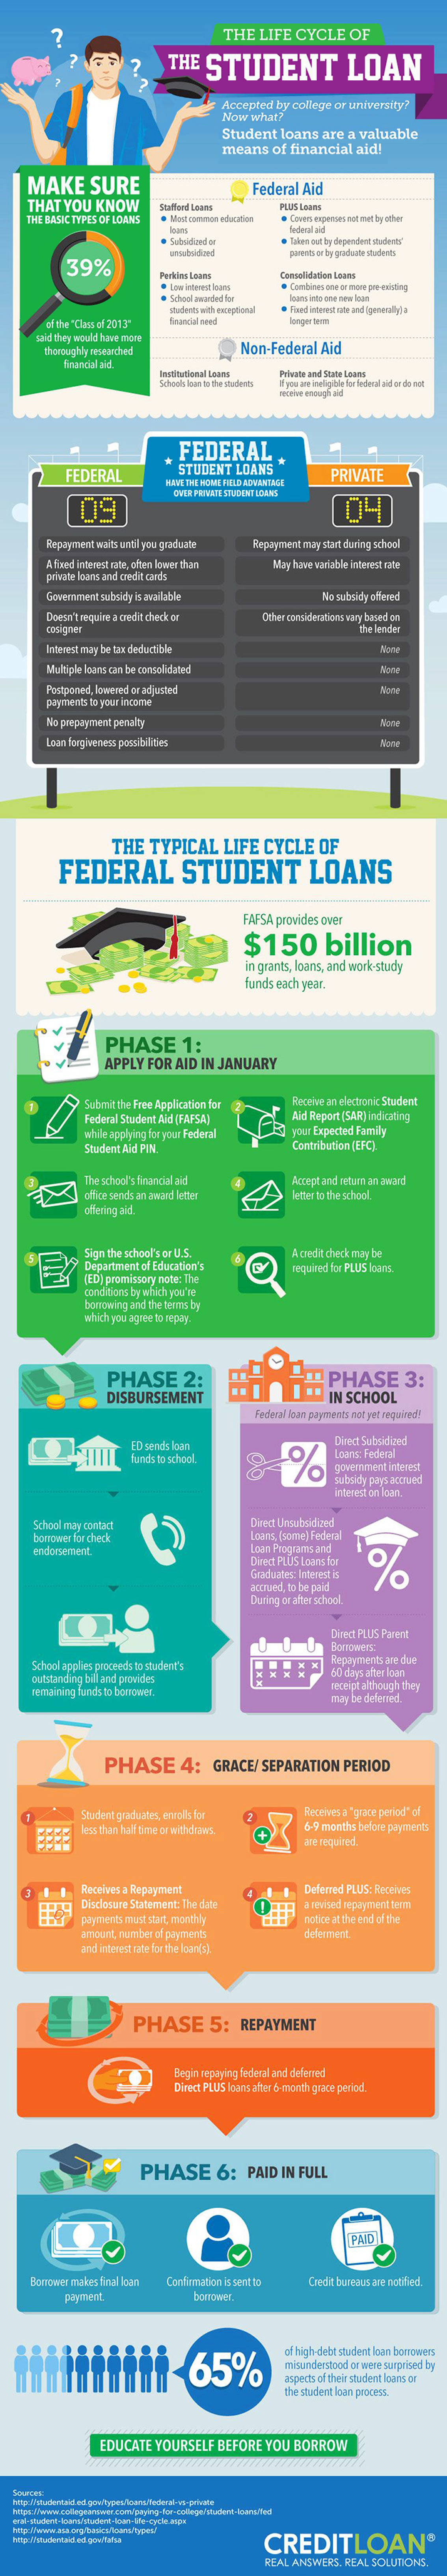 Life Cycle of Federal Student Loans - College Education Infographic